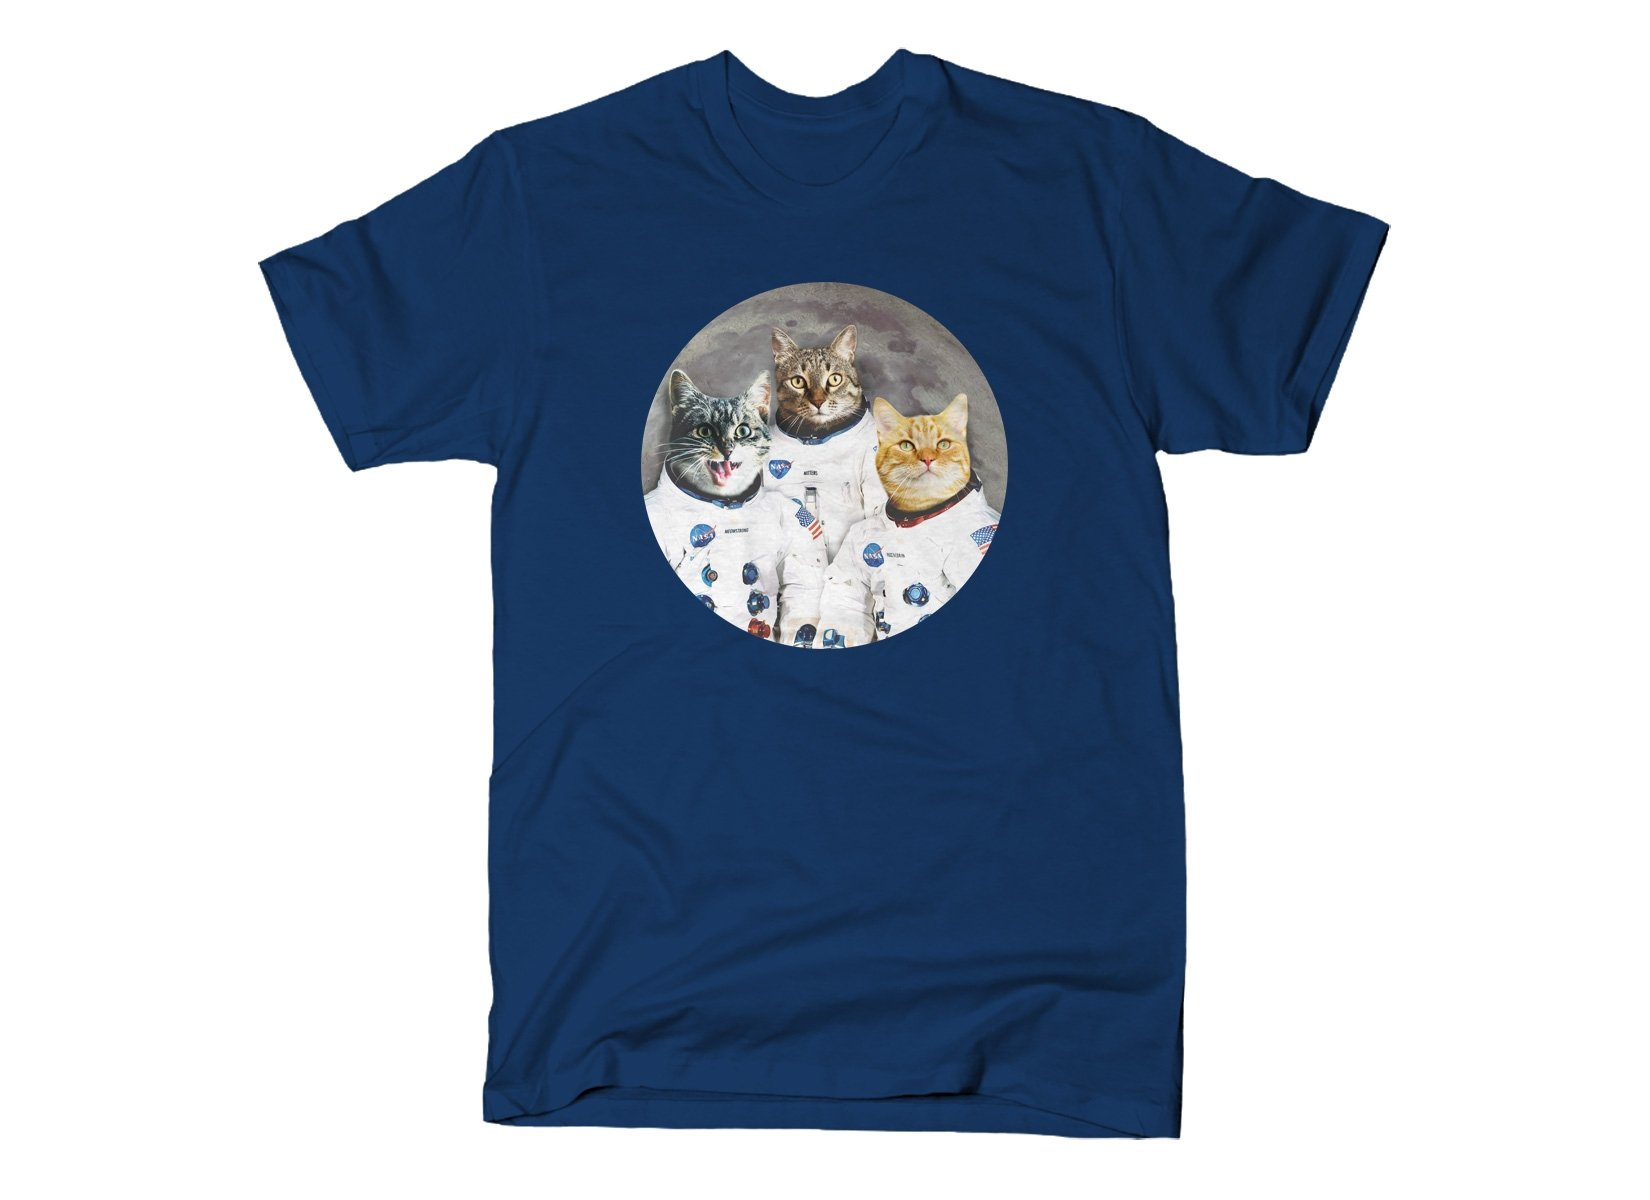 Catstronauts on Mens T-Shirt